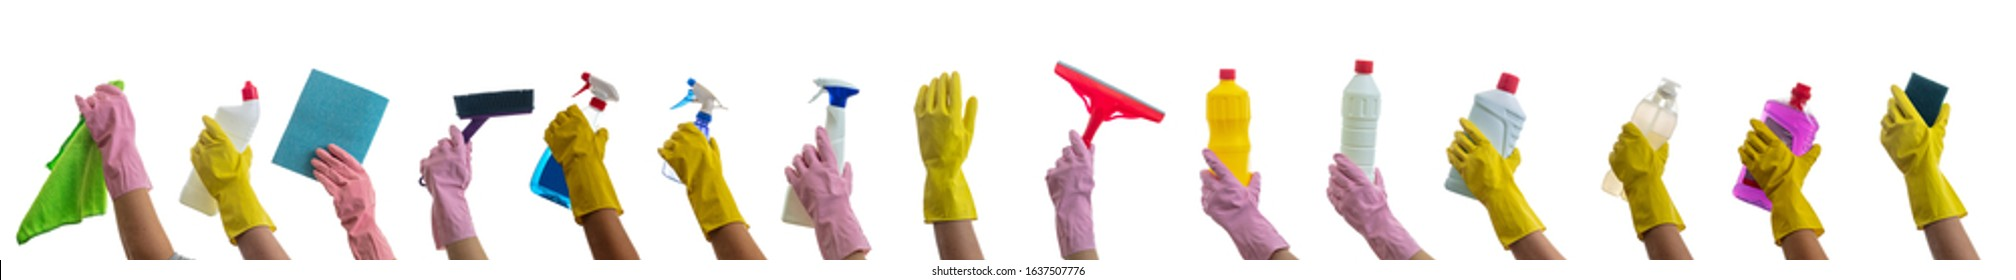 Cleaning, hand holding cleaning products and accessories isolated against white background. Cleaner rubber glove with cleaning supplies collage.